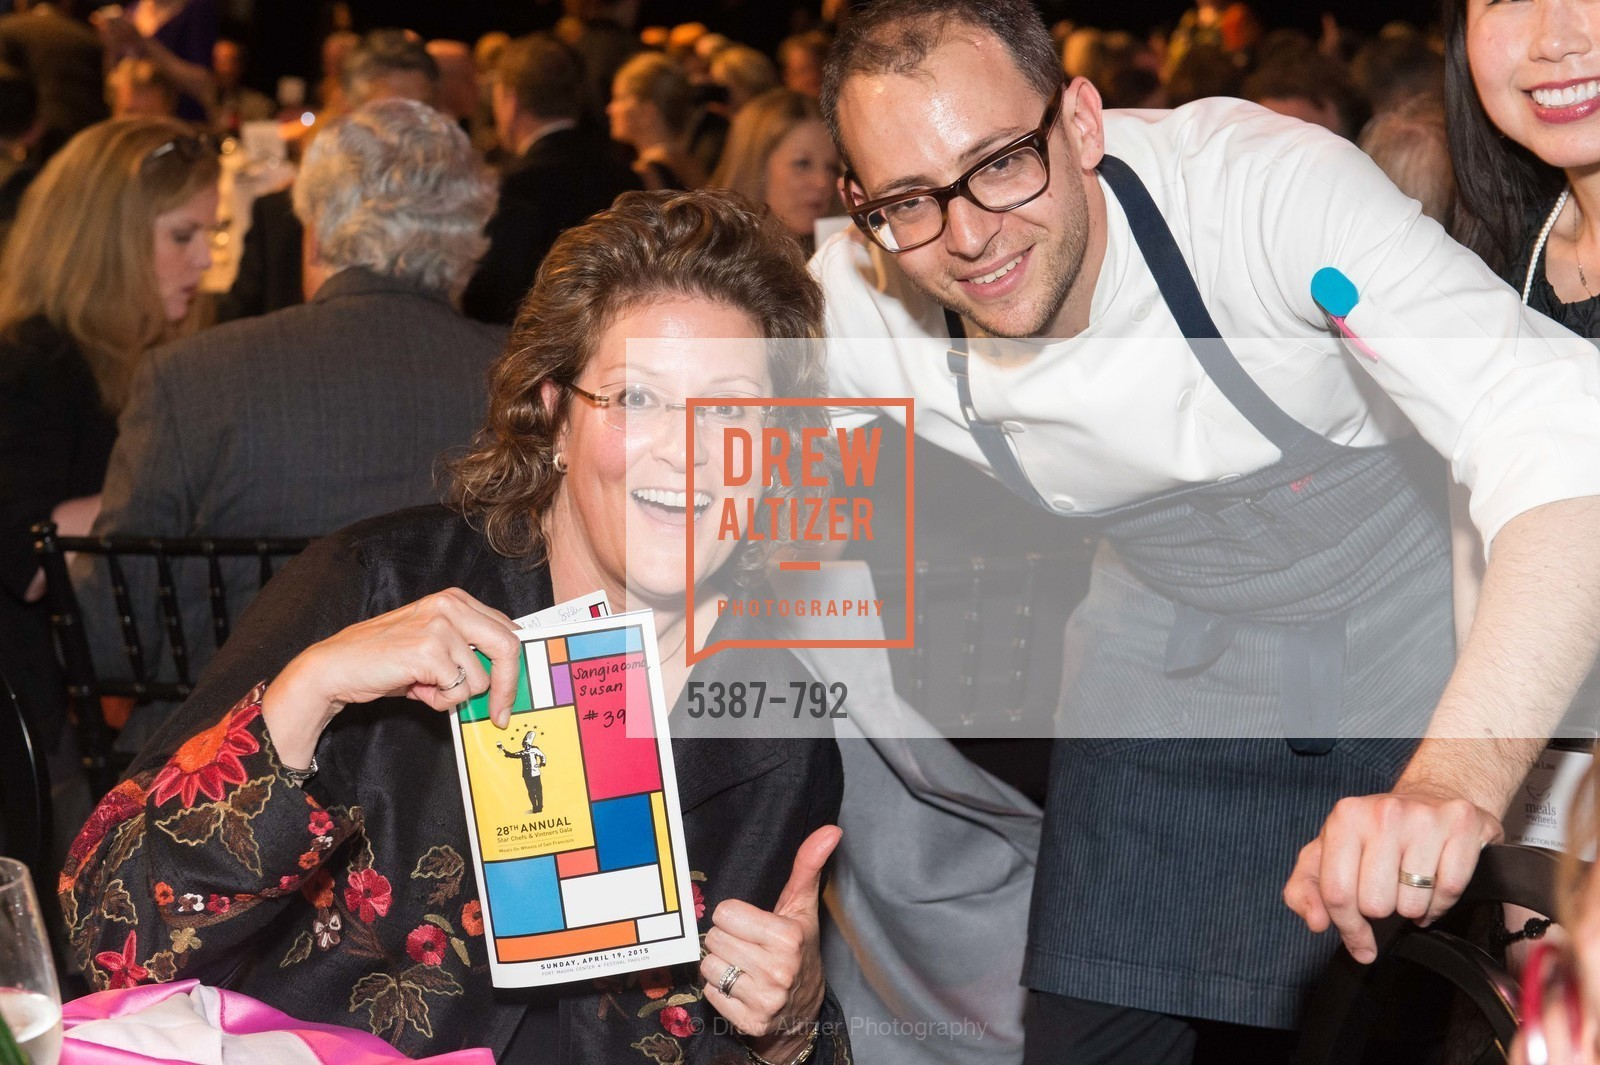 Susan Sangiocomo, MEALS ON WHEELS OF SAN FRANCISCO'S 28th Annual Star Chefs and Vintners Gala, US, April 20th, 2015,Drew Altizer, Drew Altizer Photography, full-service agency, private events, San Francisco photographer, photographer california